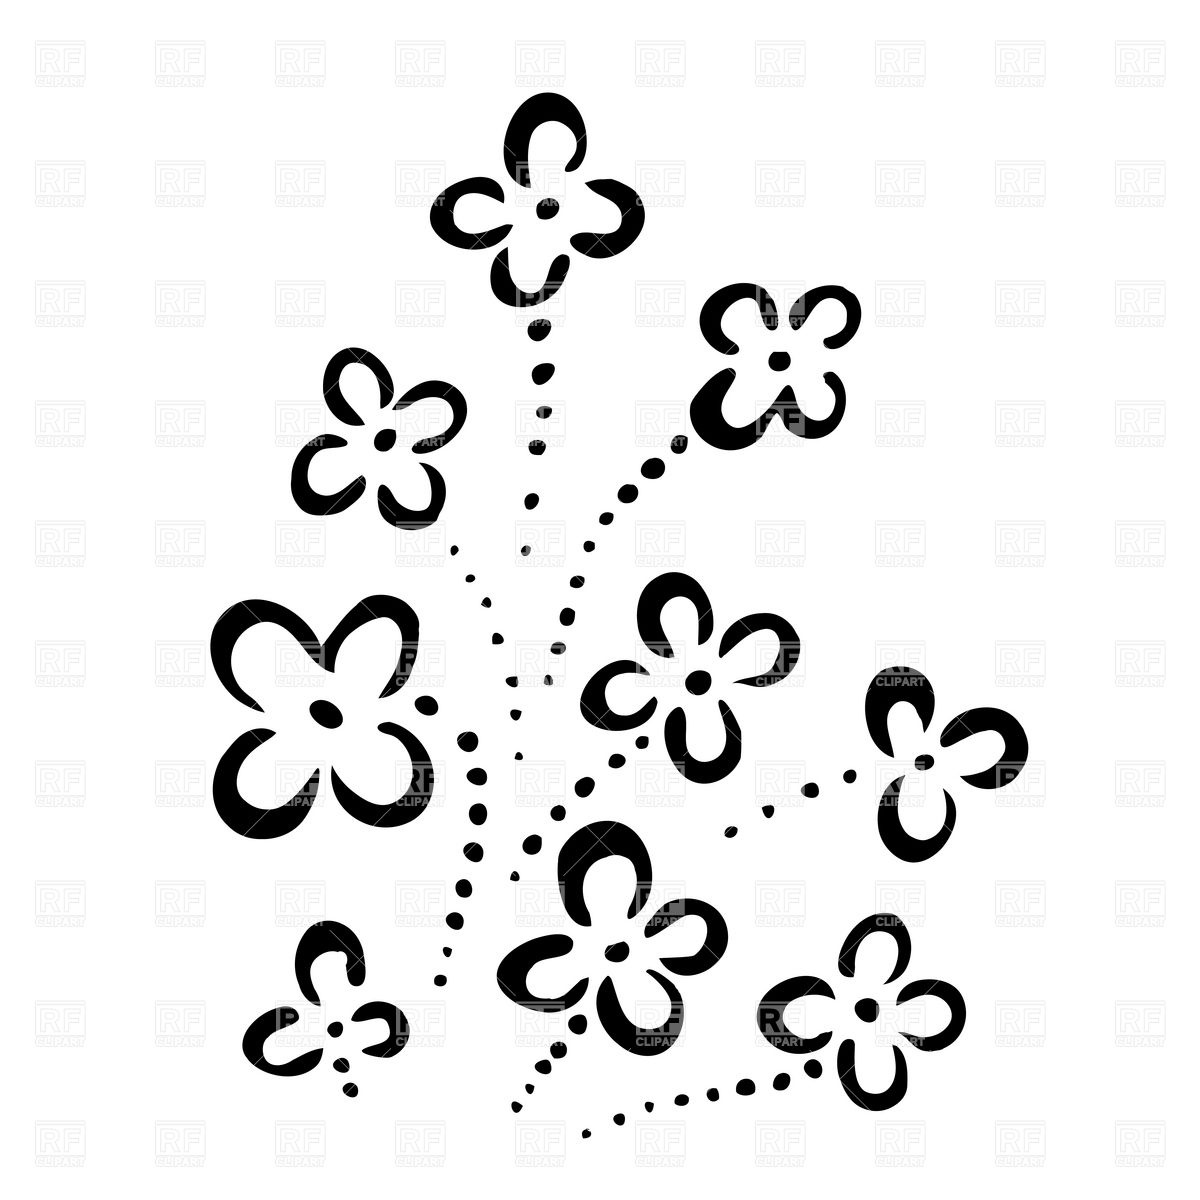 Simple Flower Designs Patterns Images amp Pictures Becuo